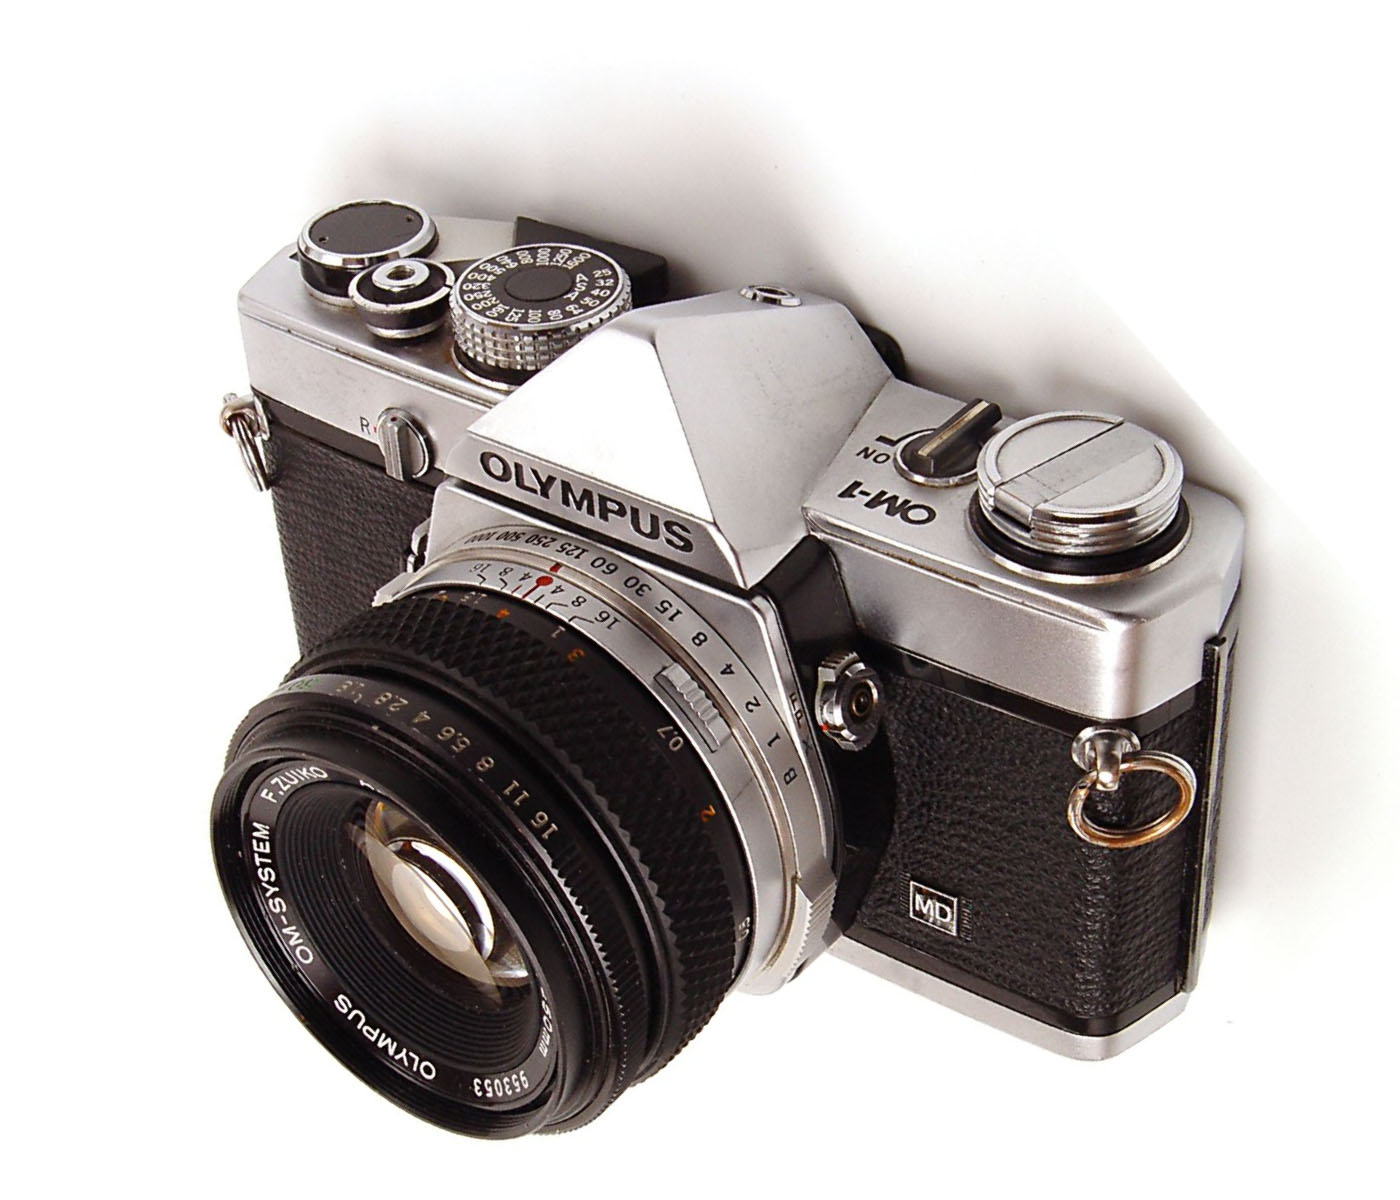 A photo of the Olympus OM-1 35mm camera